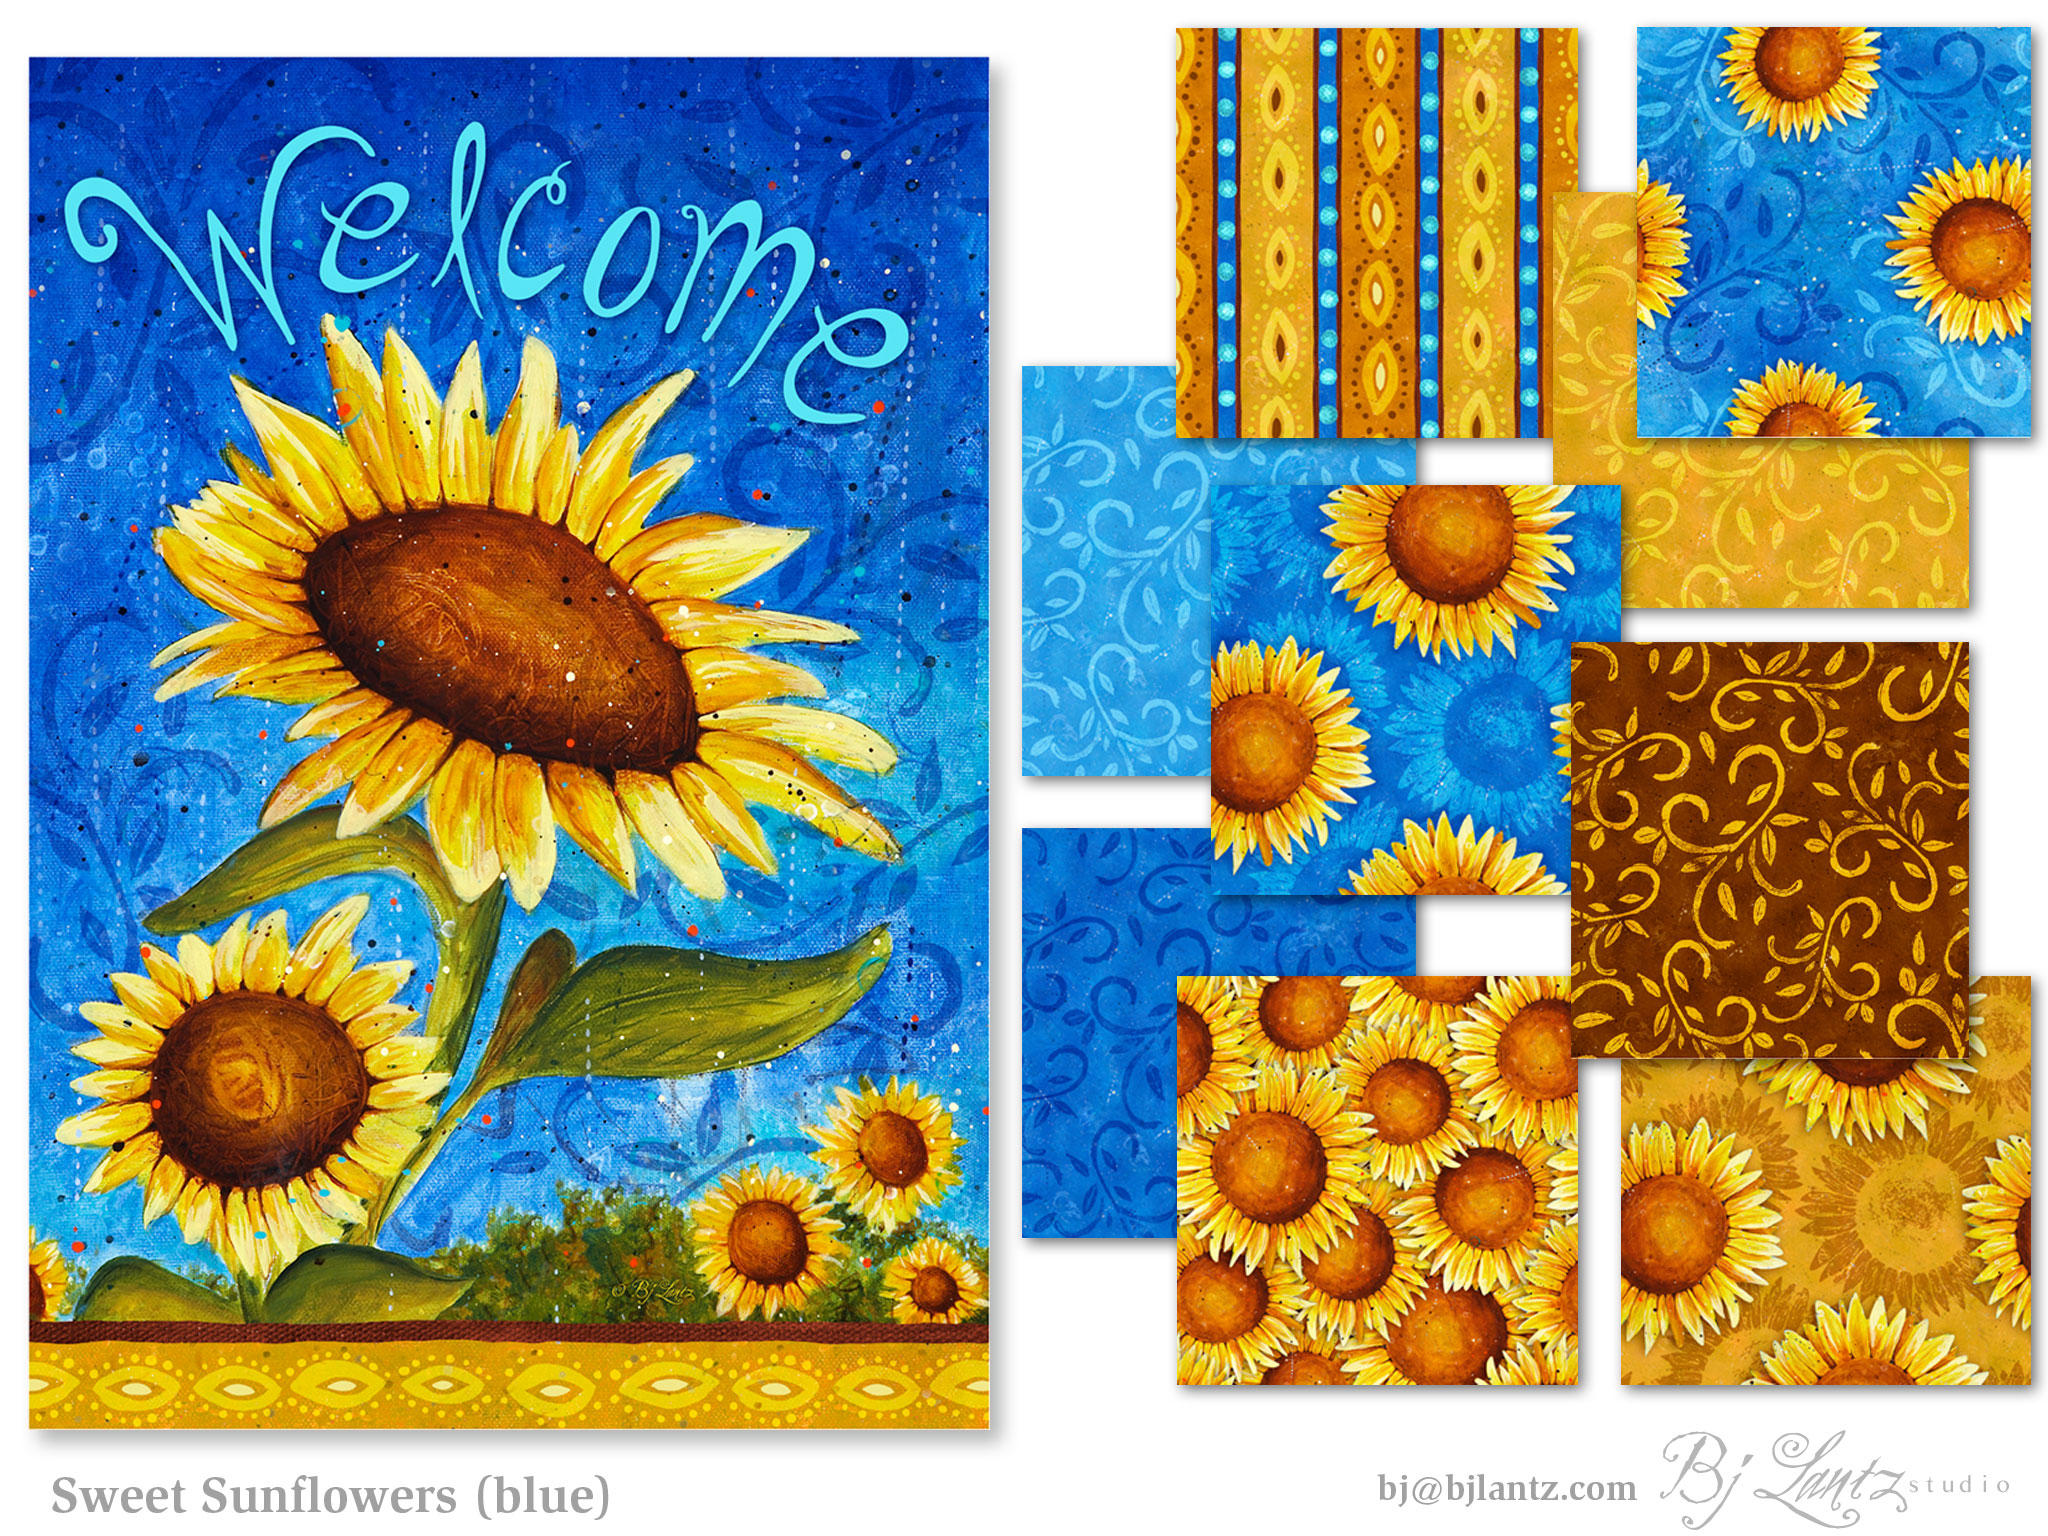 Sweetsunflowers-blue-BJ-Lantz_1.jpg